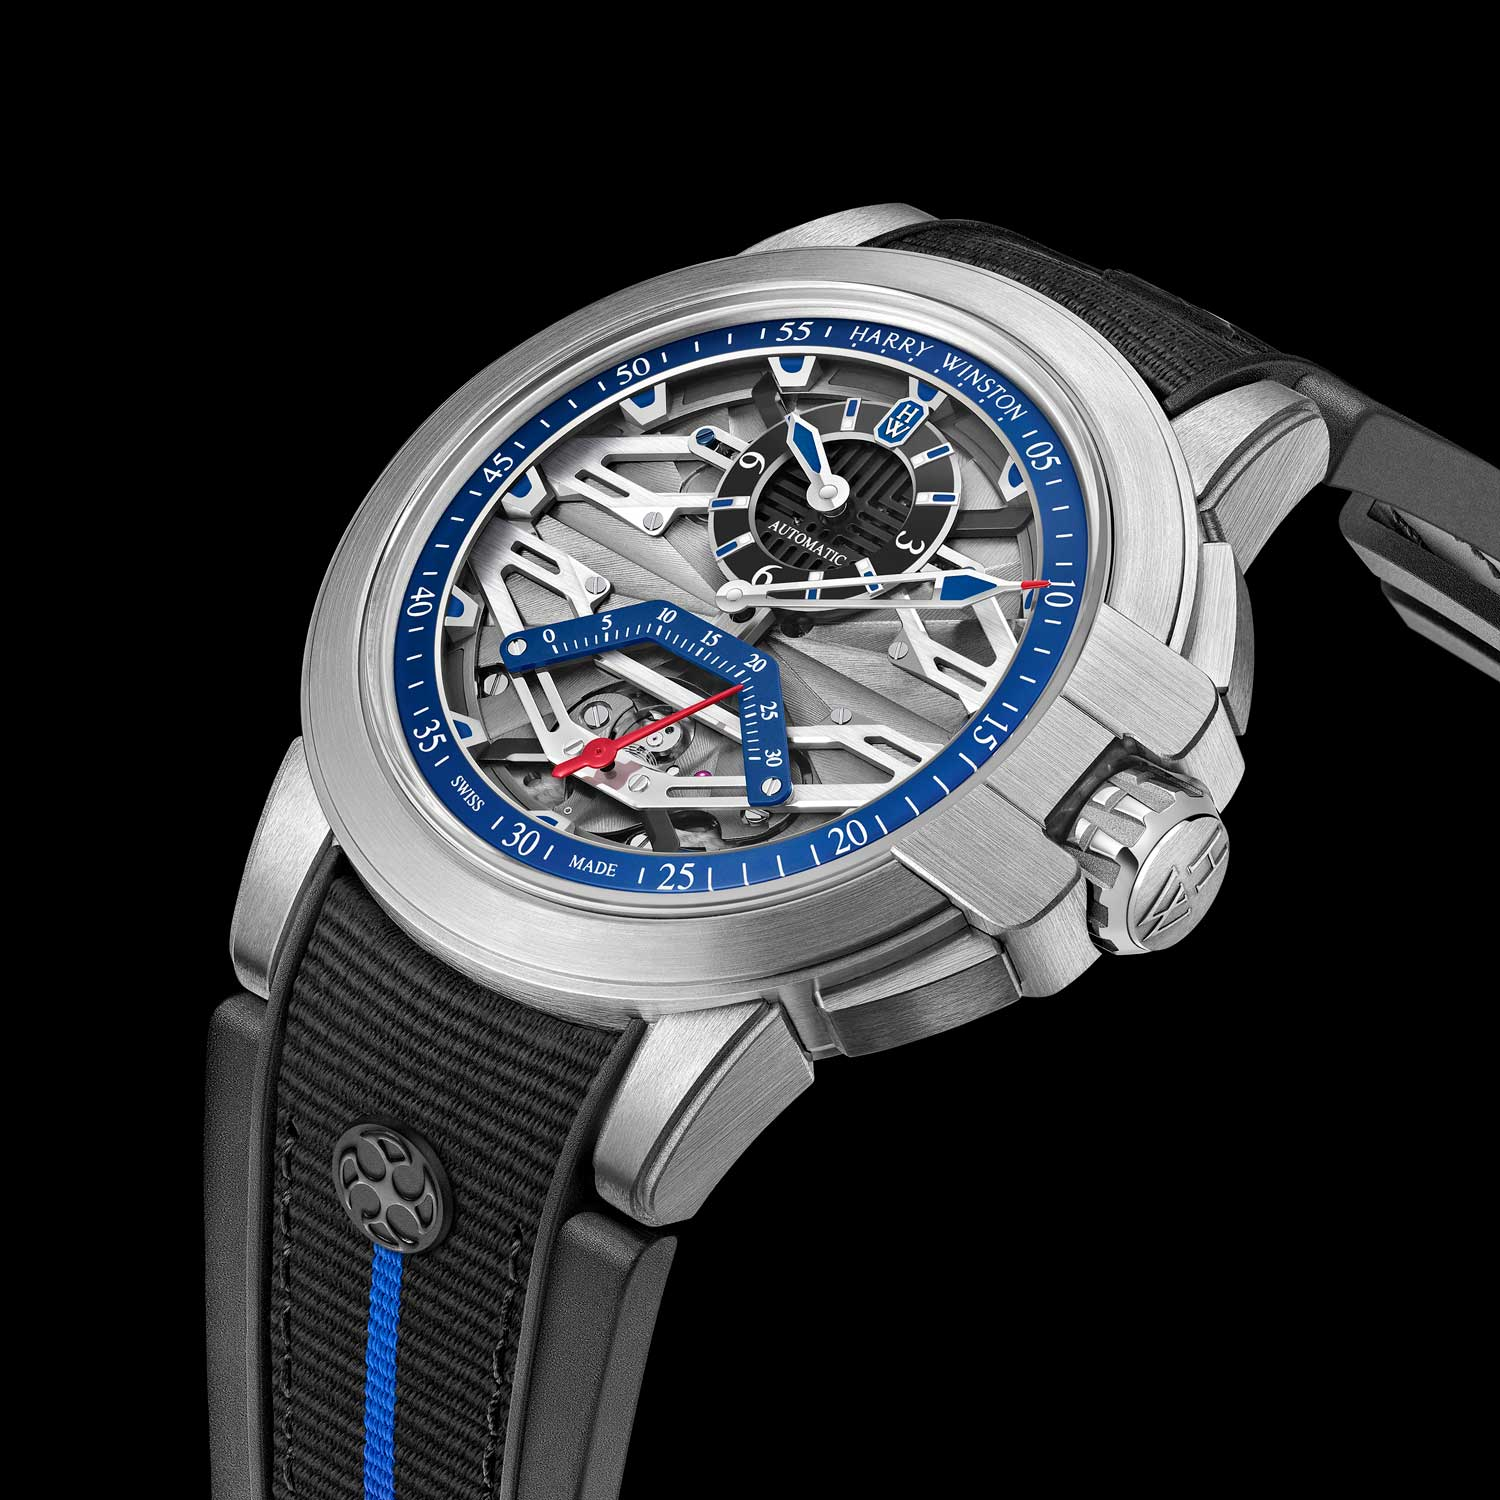 The Project Z15 presents Harry Winston's classical regulator dial layout with an added twist of a retrograde seconds indication.